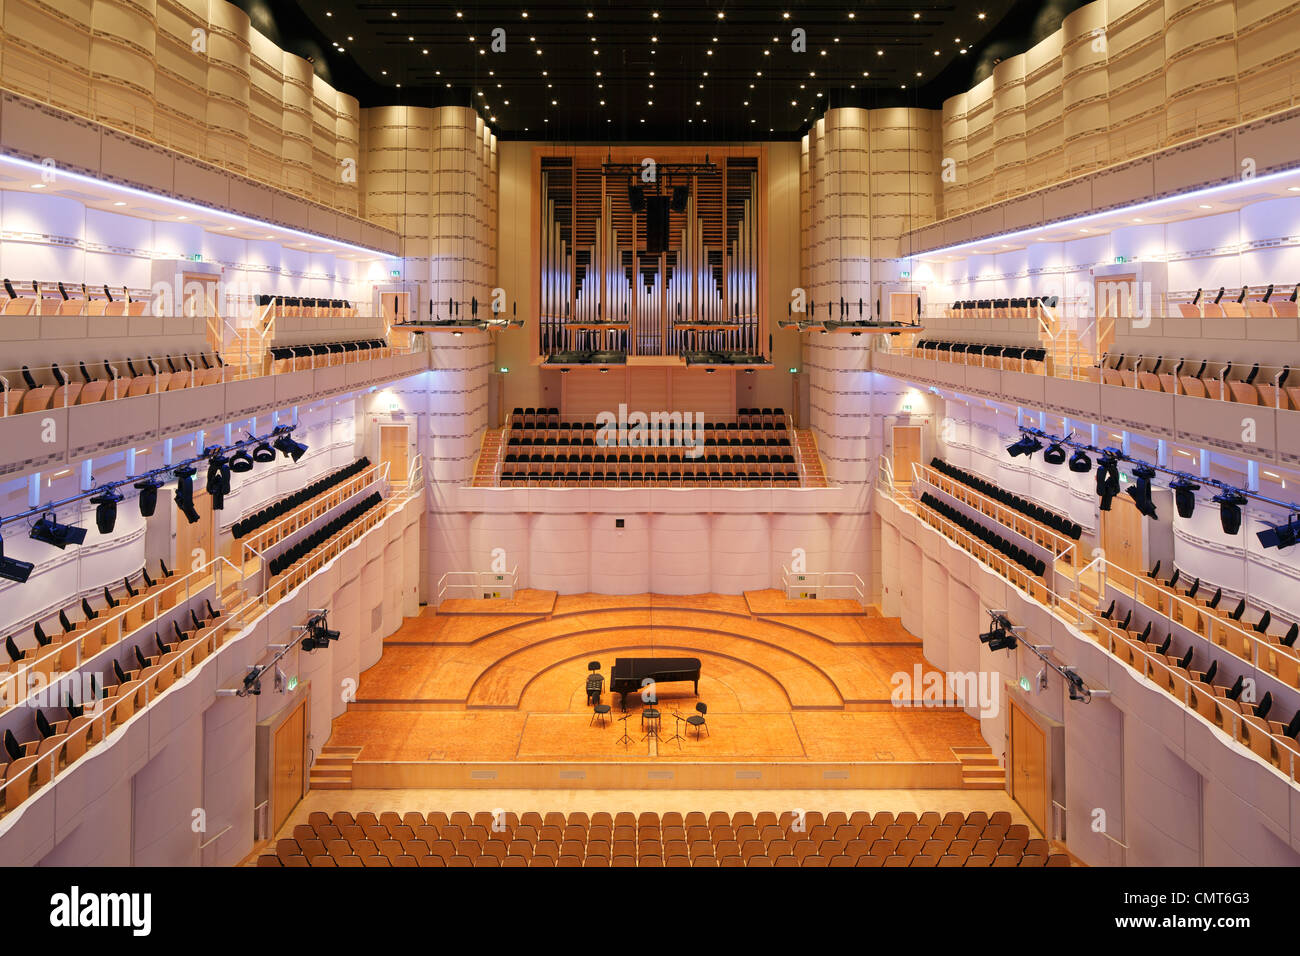 musiksaal im konzerthaus dortmund ruhrgebiet nordrhein westfalen stockfoto bild 47245859 alamy. Black Bedroom Furniture Sets. Home Design Ideas